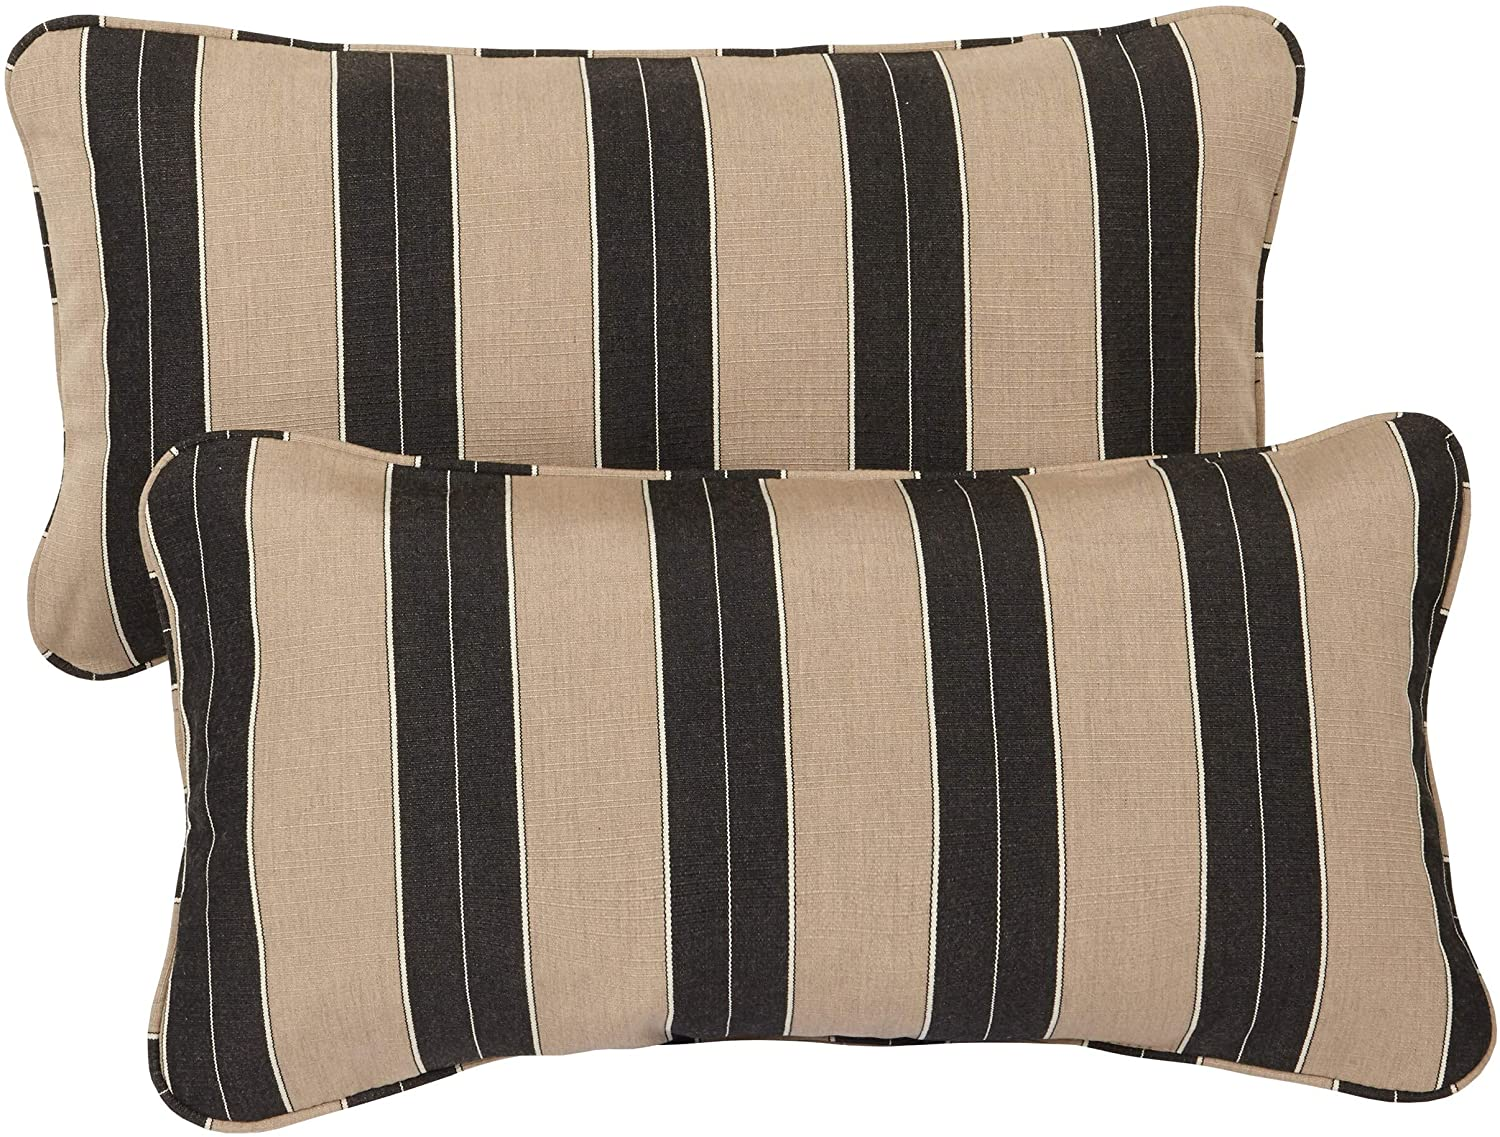 Cocoa Stripe Corded Indoor/Outdoor Lumbar Pillows Fabric (Set 2) Black Brown White Striped Traditional Transitional Fade Resistant Uv Water